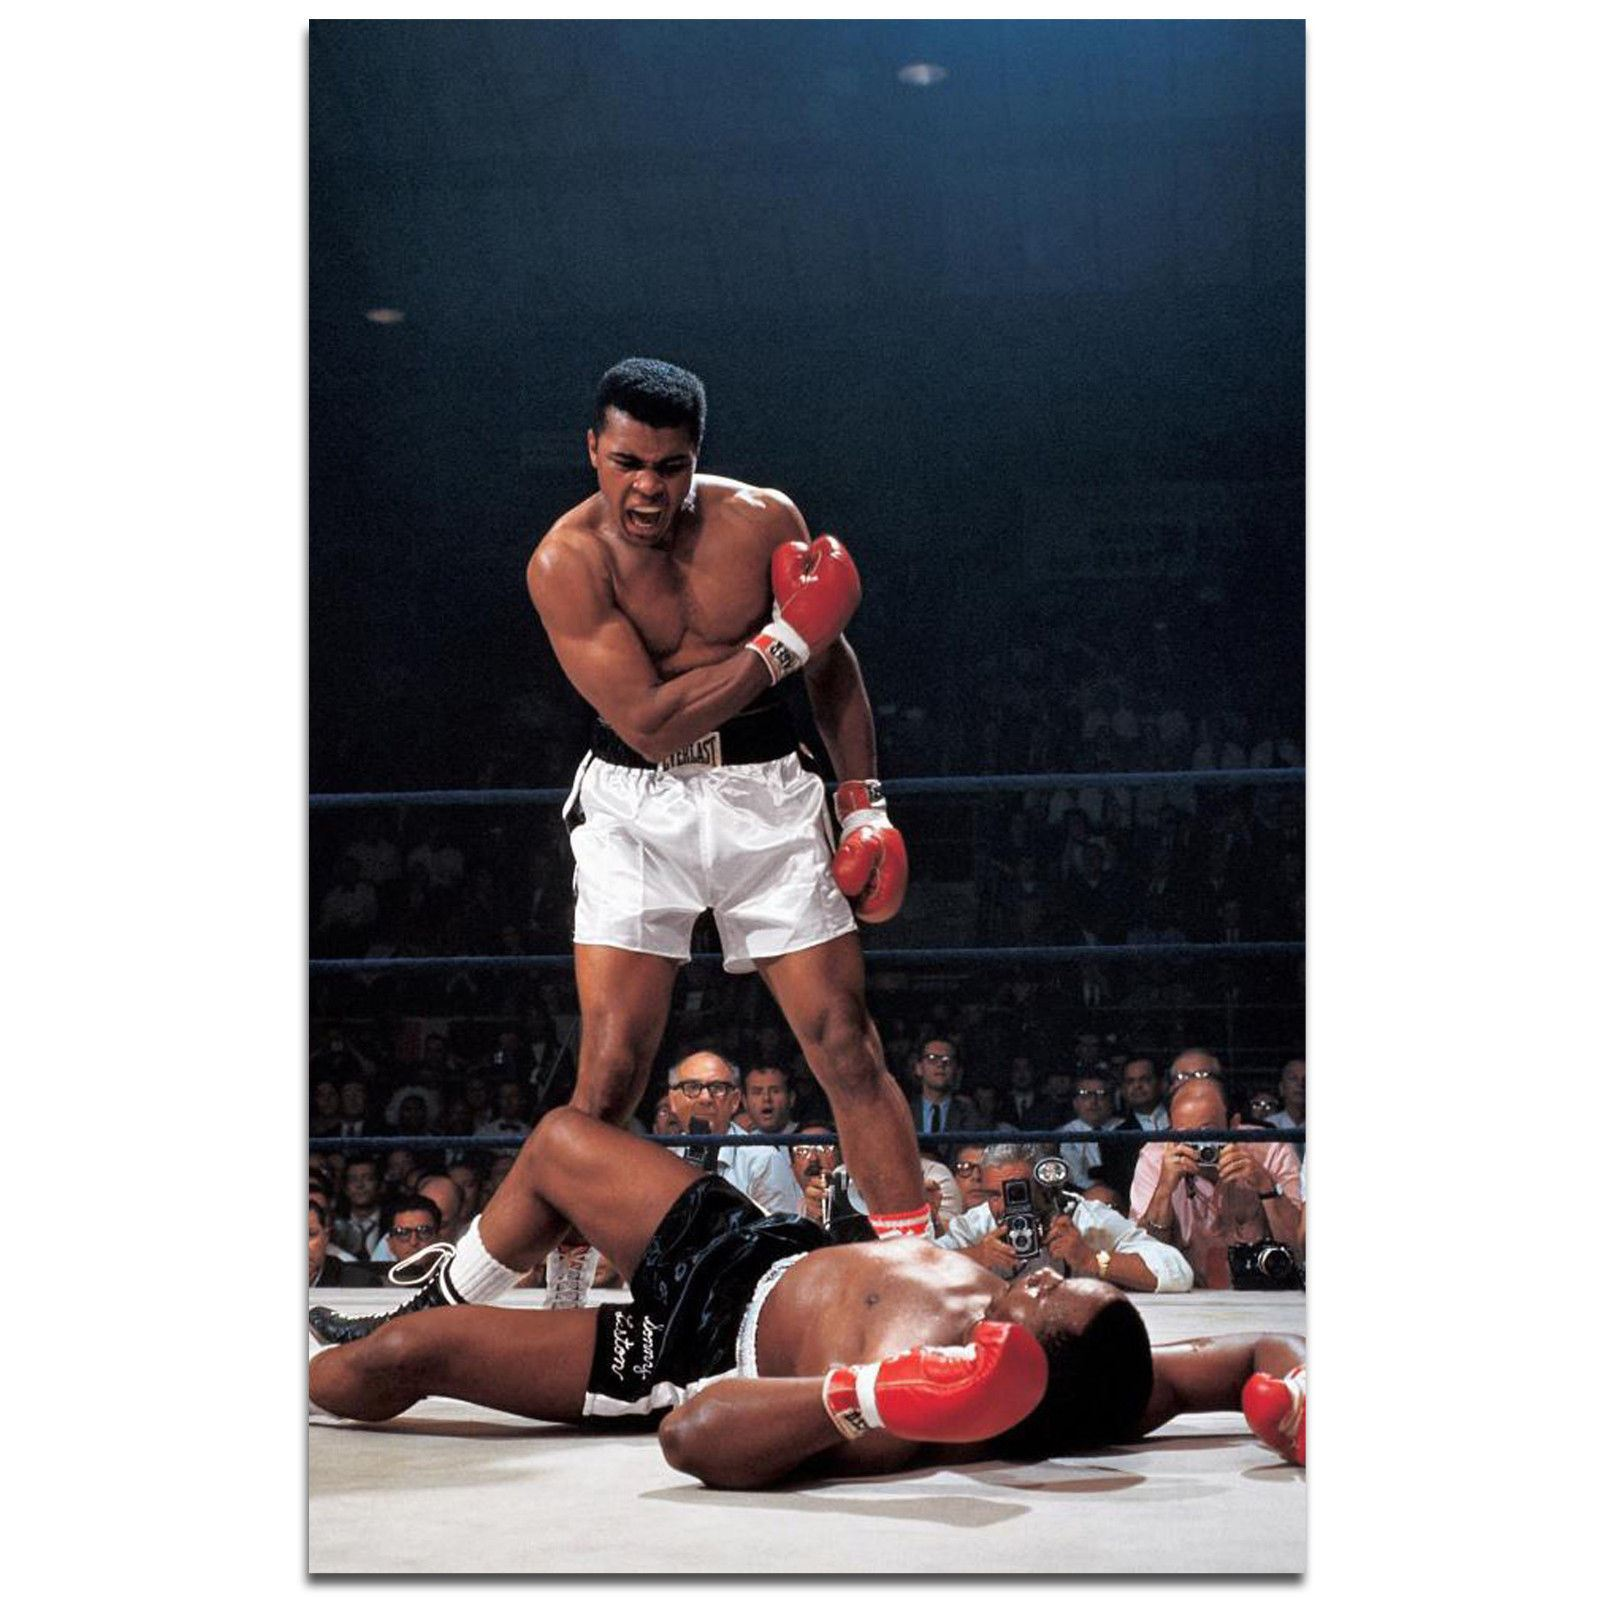 King of Boxing Great Top Player  Fabric Poster 16x16 24x24 Y548 Muhammad Ali